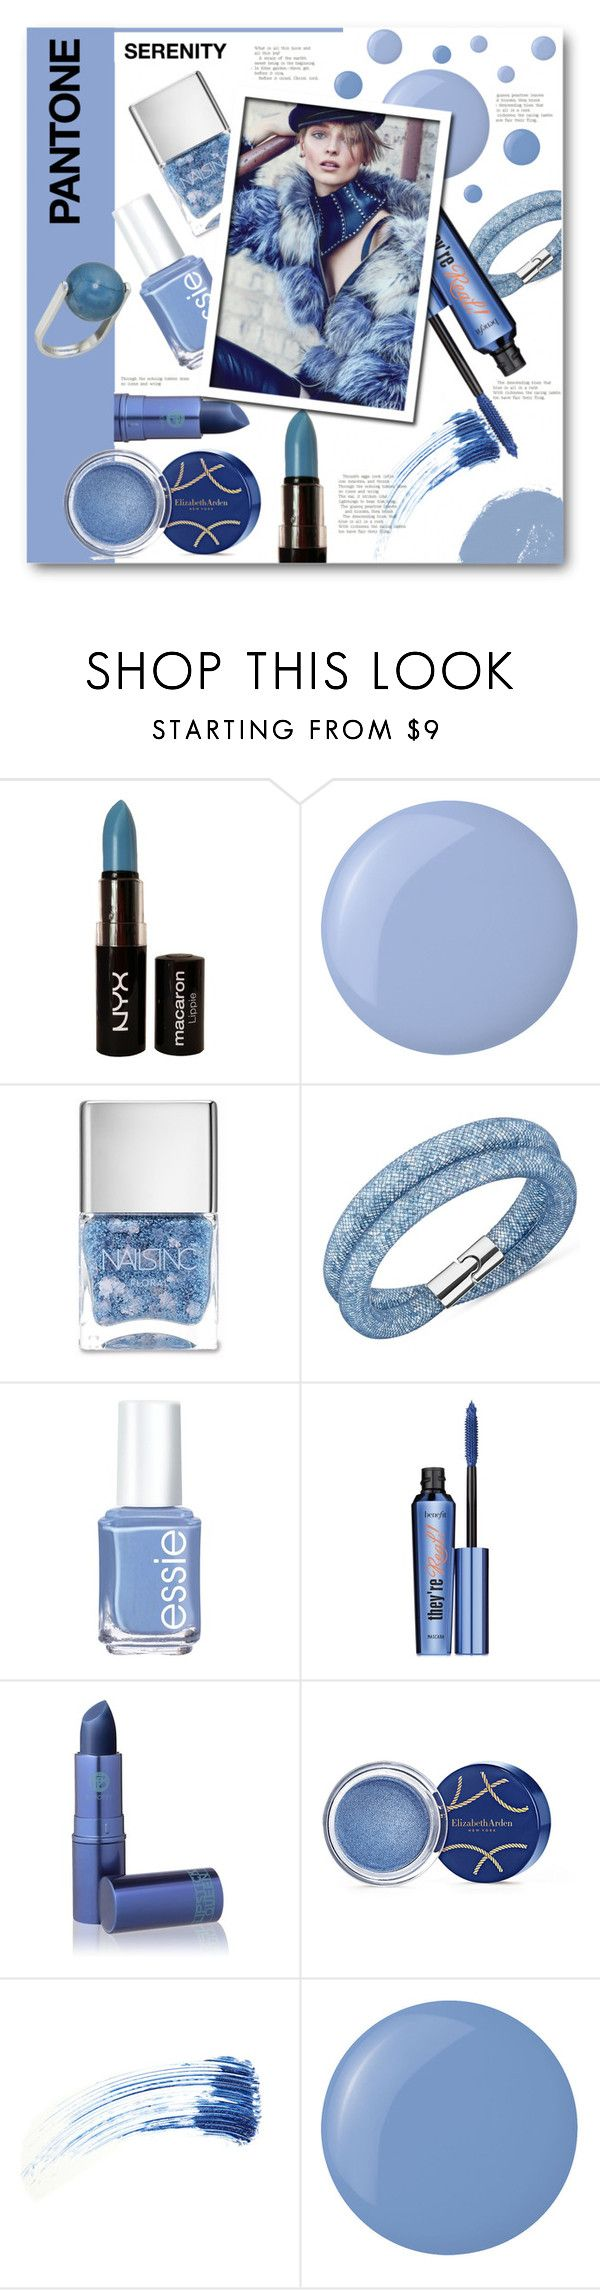 """""""Pantone Beauty: Rose Quartz and Serenity"""" by anitadz ❤ liked on Polyvore featuring uroda, NYX, Essie, Nails Inc., Swarovski, Benefit, Lipstick Queen, Elizabeth Arden, Eyeko i French Connection"""